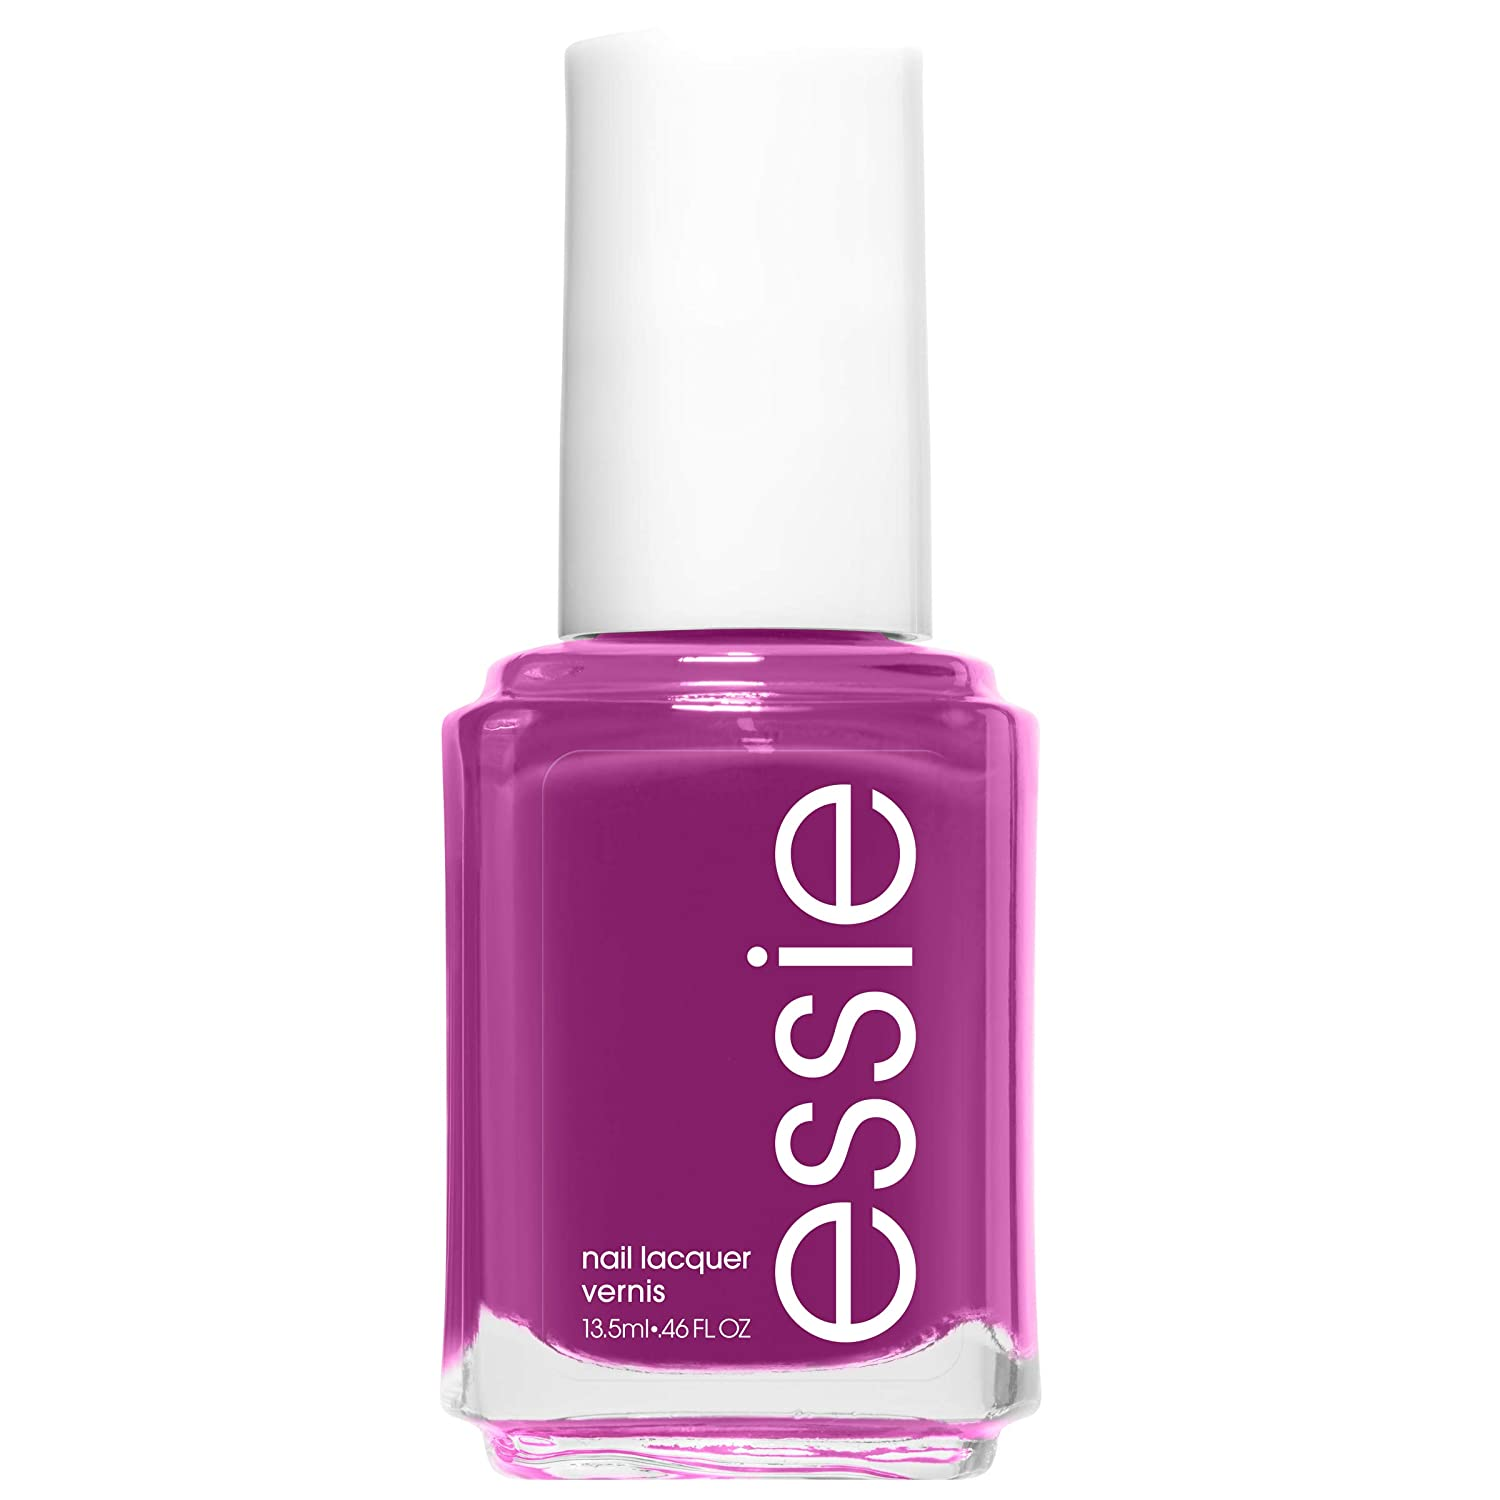 essie Nail Polish, Glossy Shine Finish, Flowerista, 0.46 fl. oz.